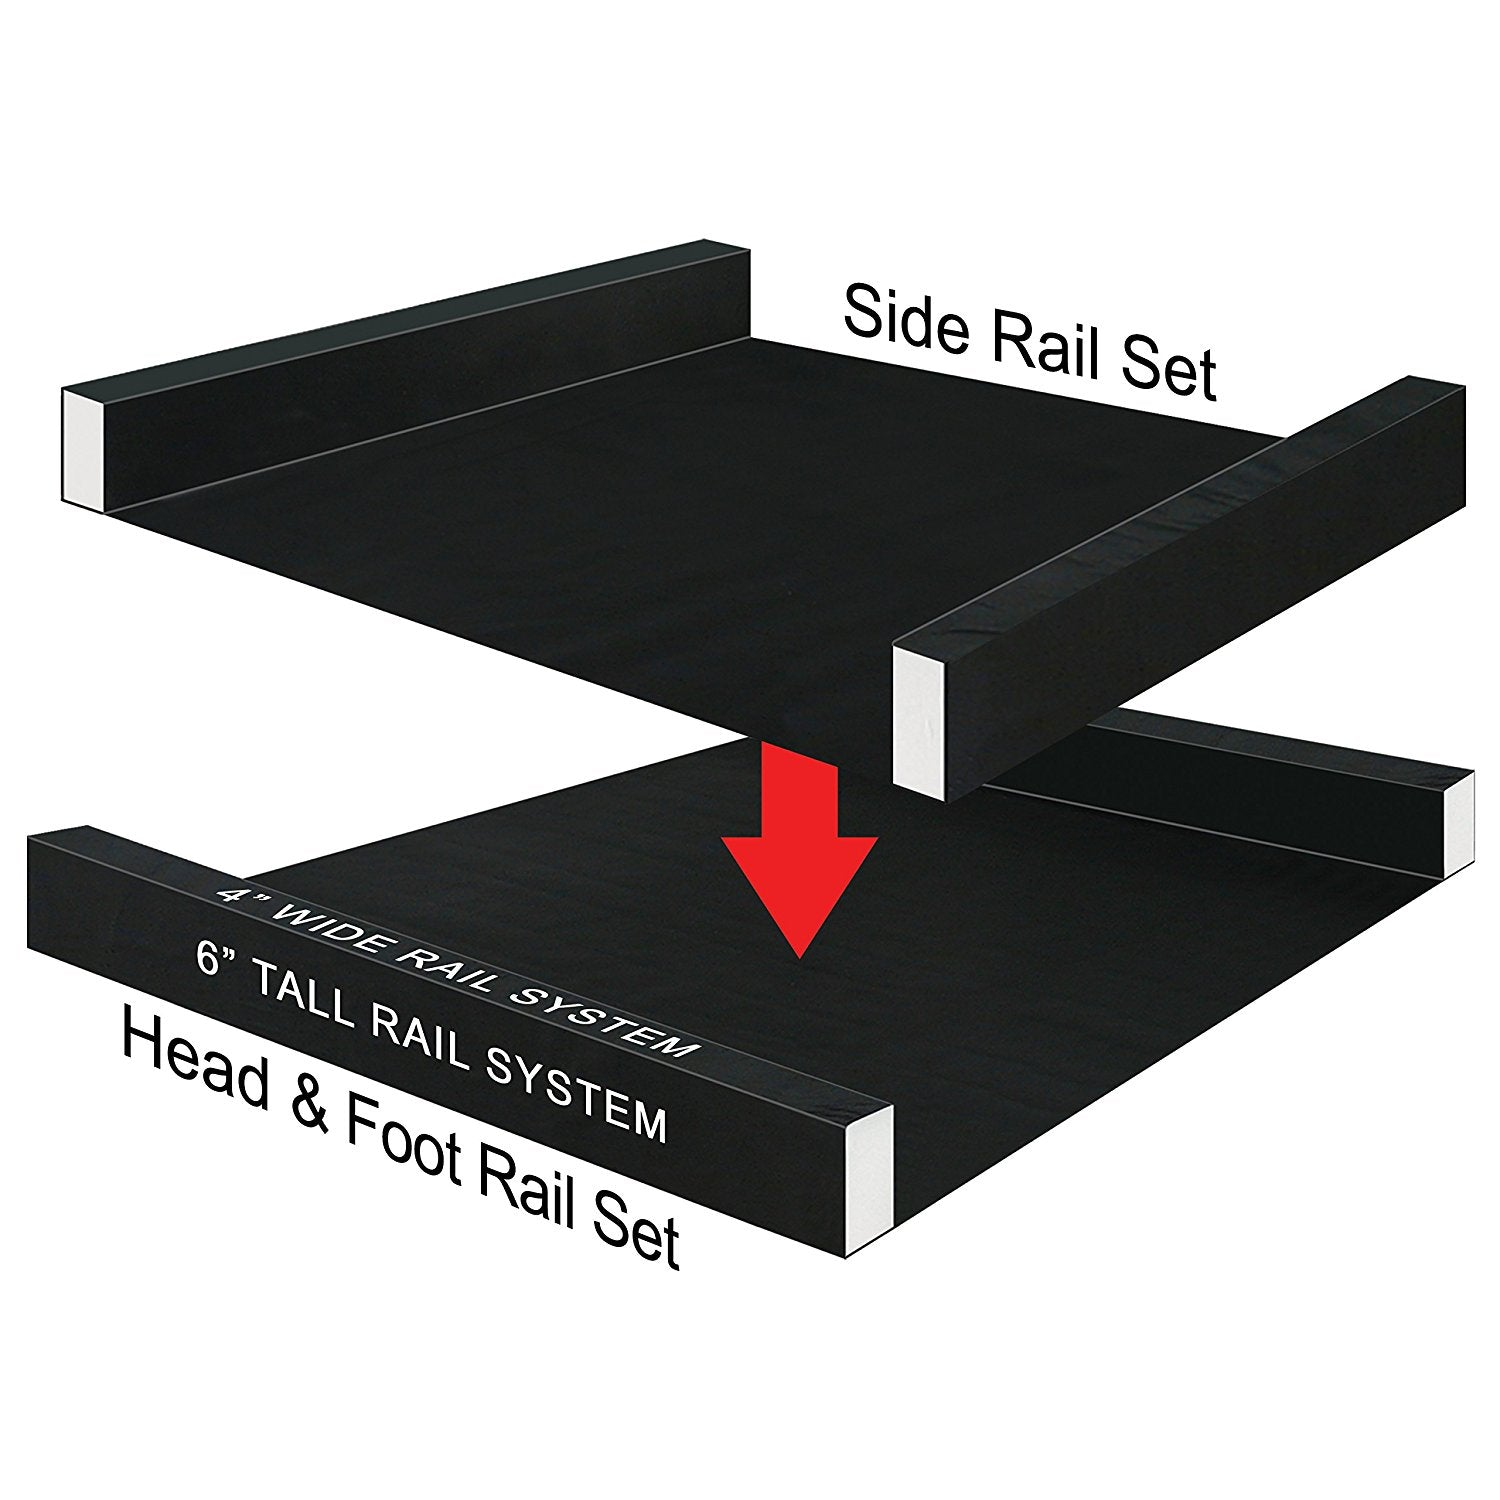 Innomax Power Edge Plus Pack Air Bed Restoration Kit For Cking Eking Airbed Replacements